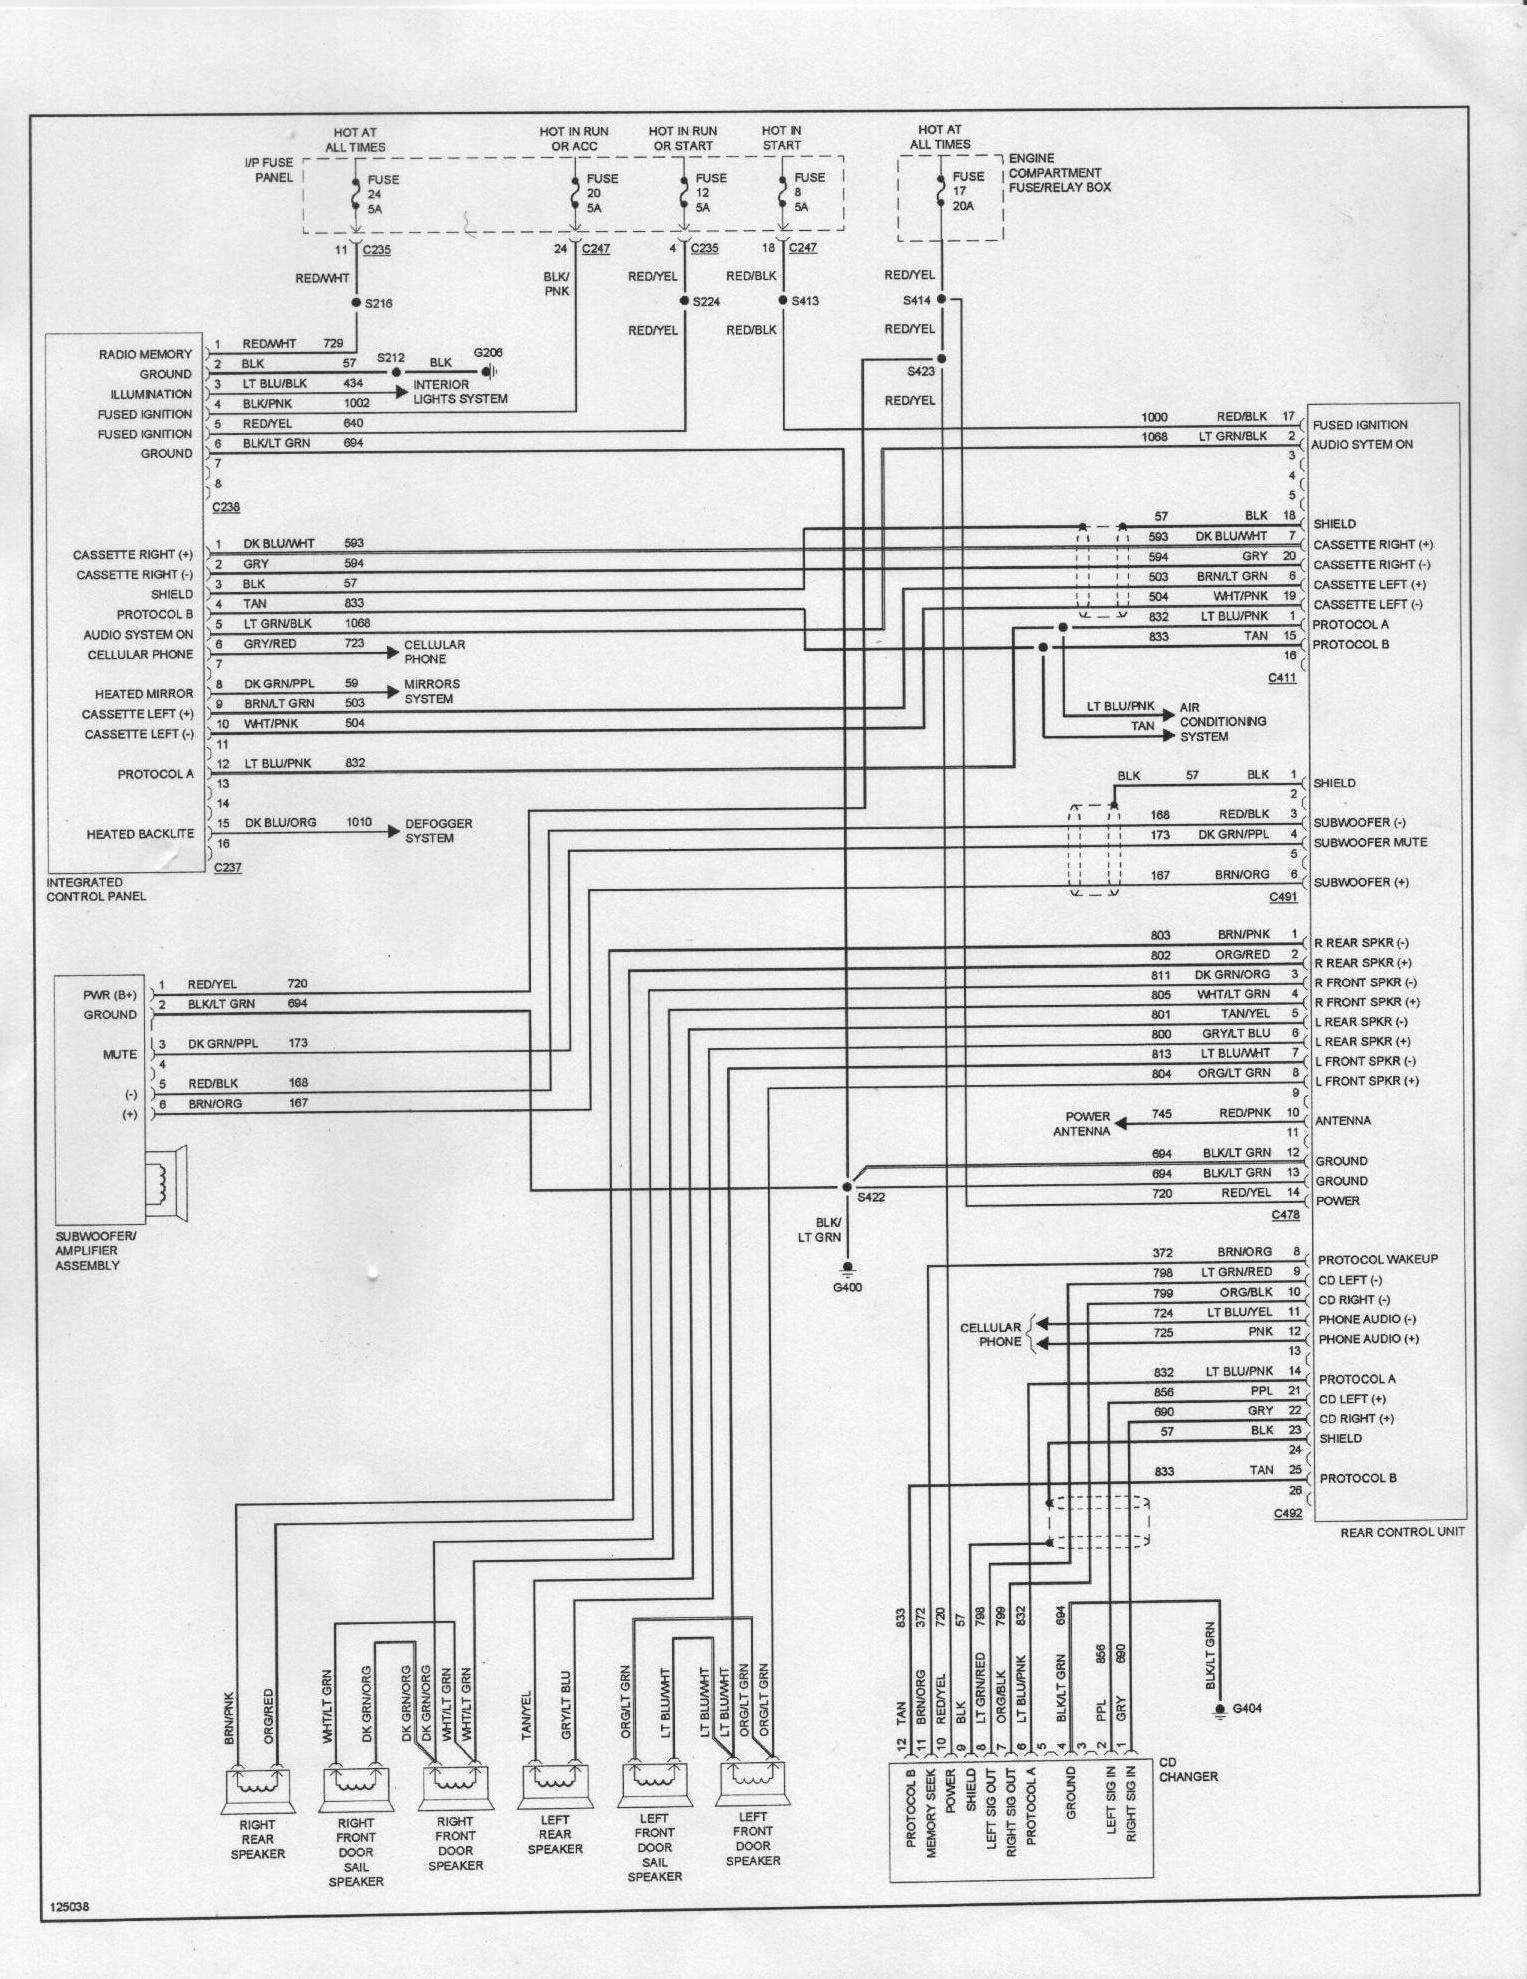 Ford Taurus Wiring Diagram - Wiring Diagram G9 on 2003 ford taurus ignition system, 2006 ford crown victoria wiring diagram, 1991 ford taurus wiring diagram, 1998 ford taurus wiring diagram, 2003 ford taurus aftermarket radio, 2003 ford taurus speedometer, 2003 ford taurus power steering, 2003 ford taurus brochure, 2003 ford taurus seats, ford spark plug wiring diagram, 2007 pontiac grand prix wiring diagram, 1990 ford taurus wiring diagram, 2010 ford mustang wiring diagram, 2003 ford taurus frame, 2003 ford taurus brake system, 1995 ford aspire wiring diagram, 1980 ford mustang wiring diagram, 2003 ford taurus owner's manual, 2001 ford explorer sport wiring diagram, 2007 ford f-250 wiring diagram,